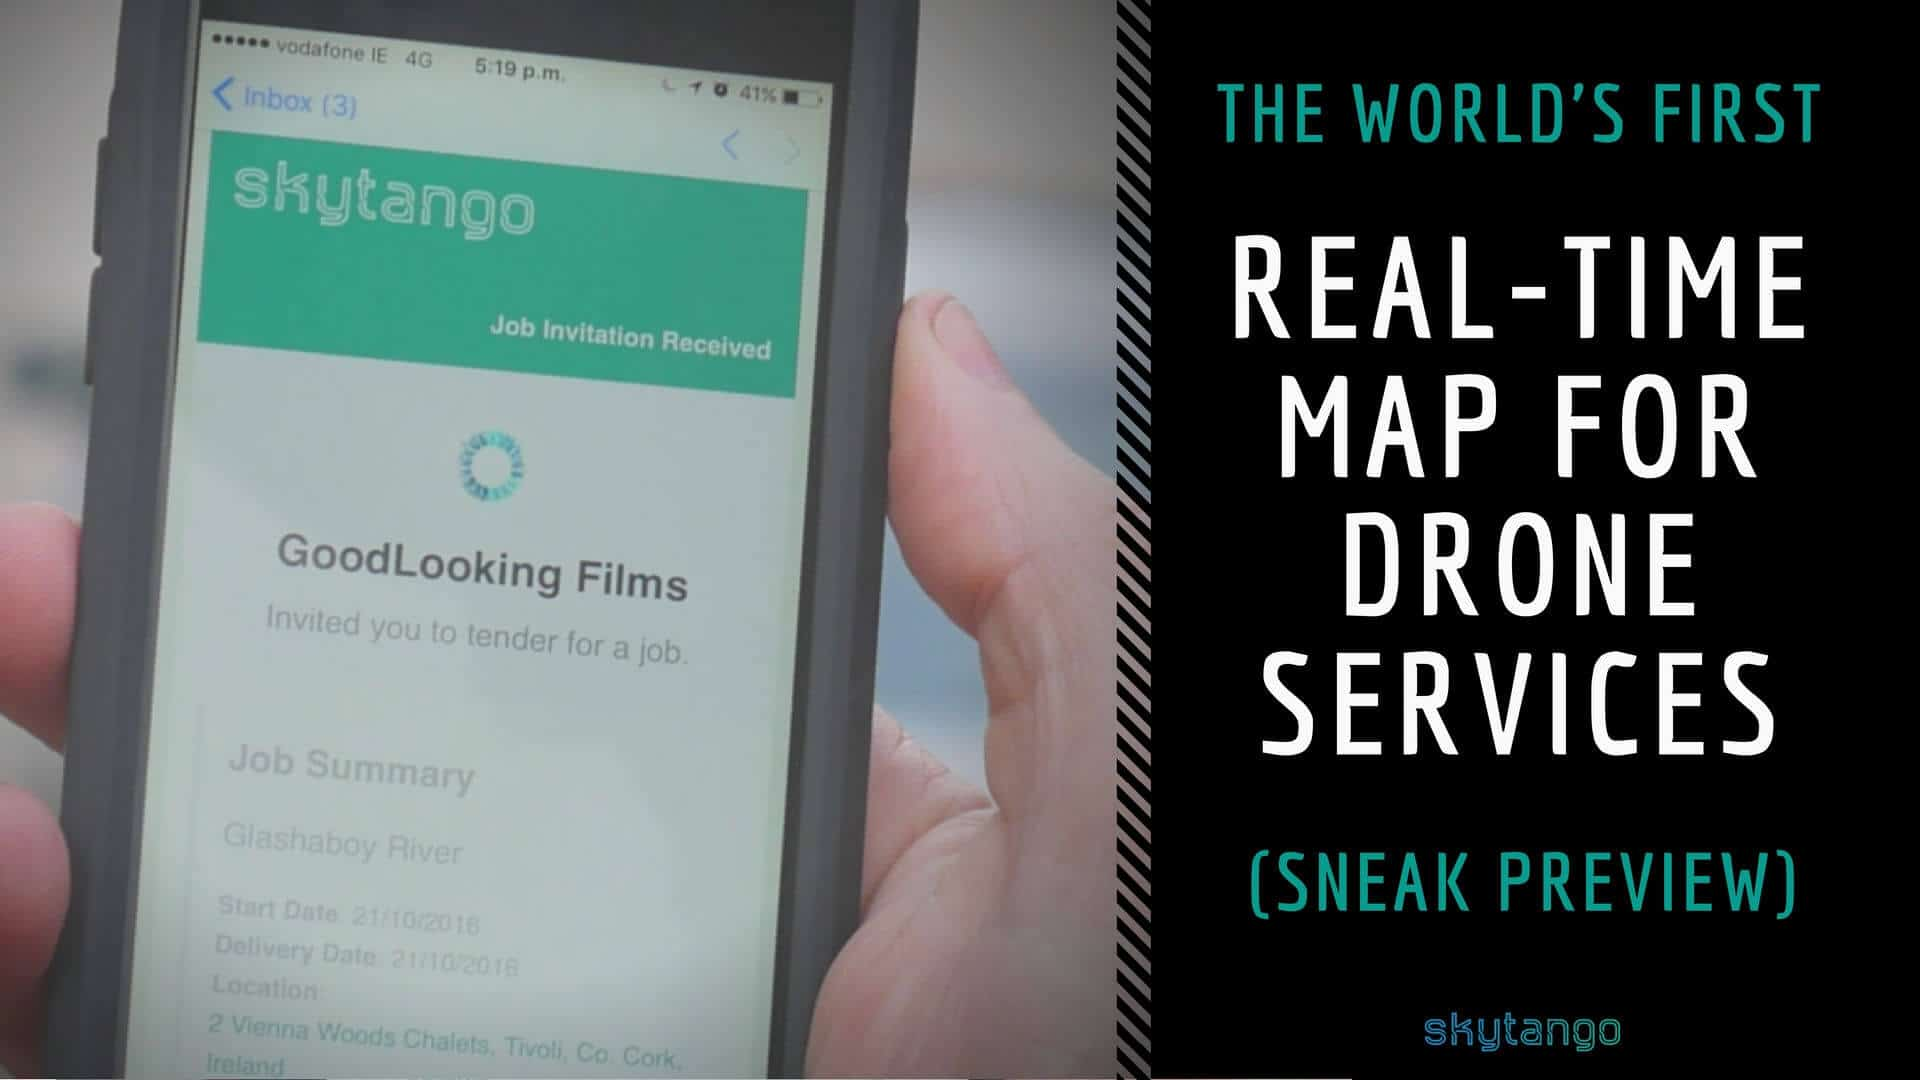 The world's first real-time map for drone service booking offered by Skytango - sneak preview